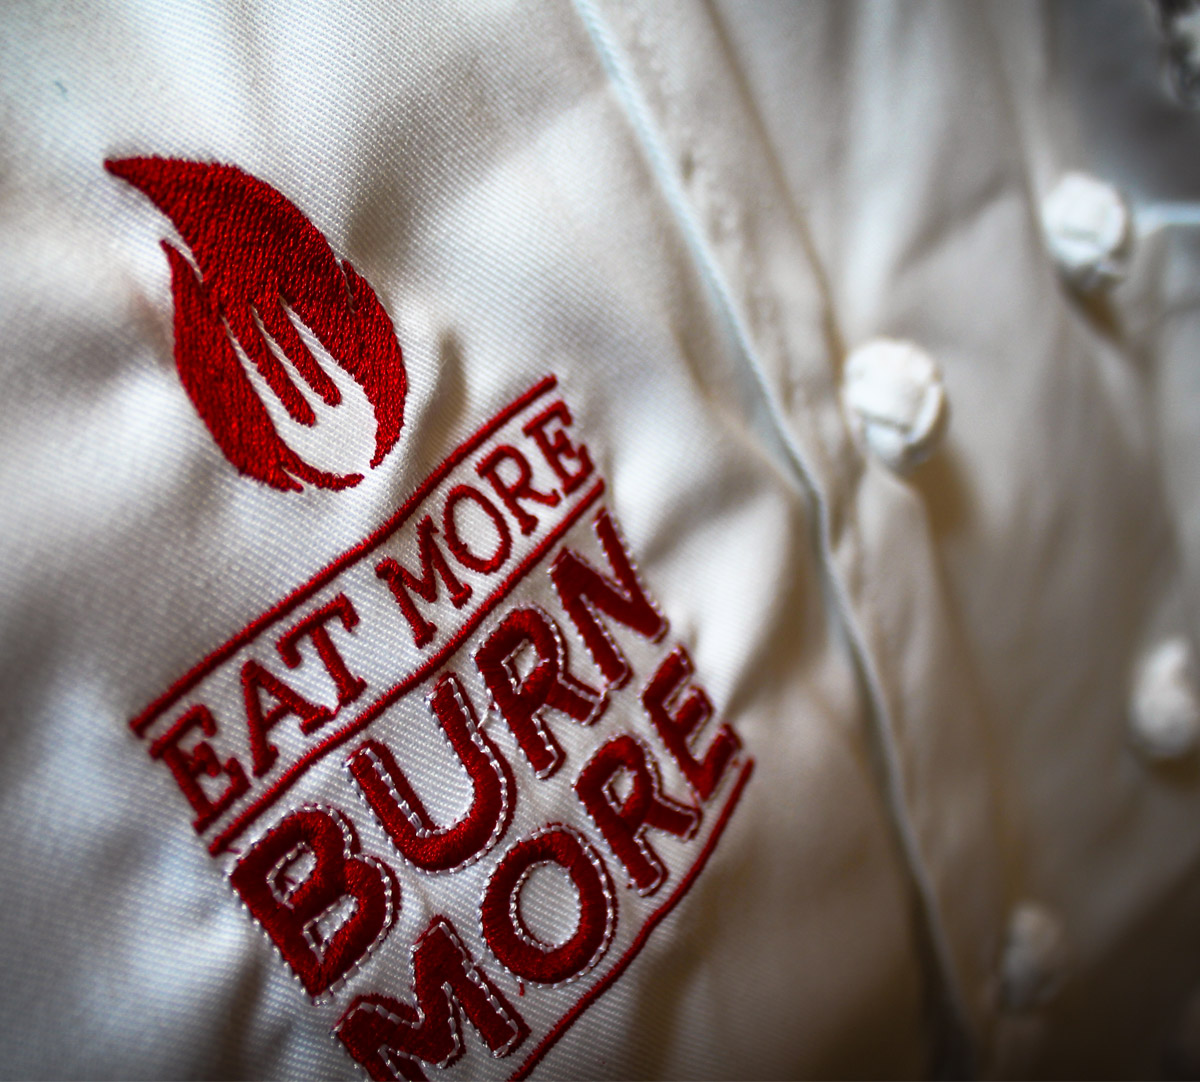 Eat More Burn More